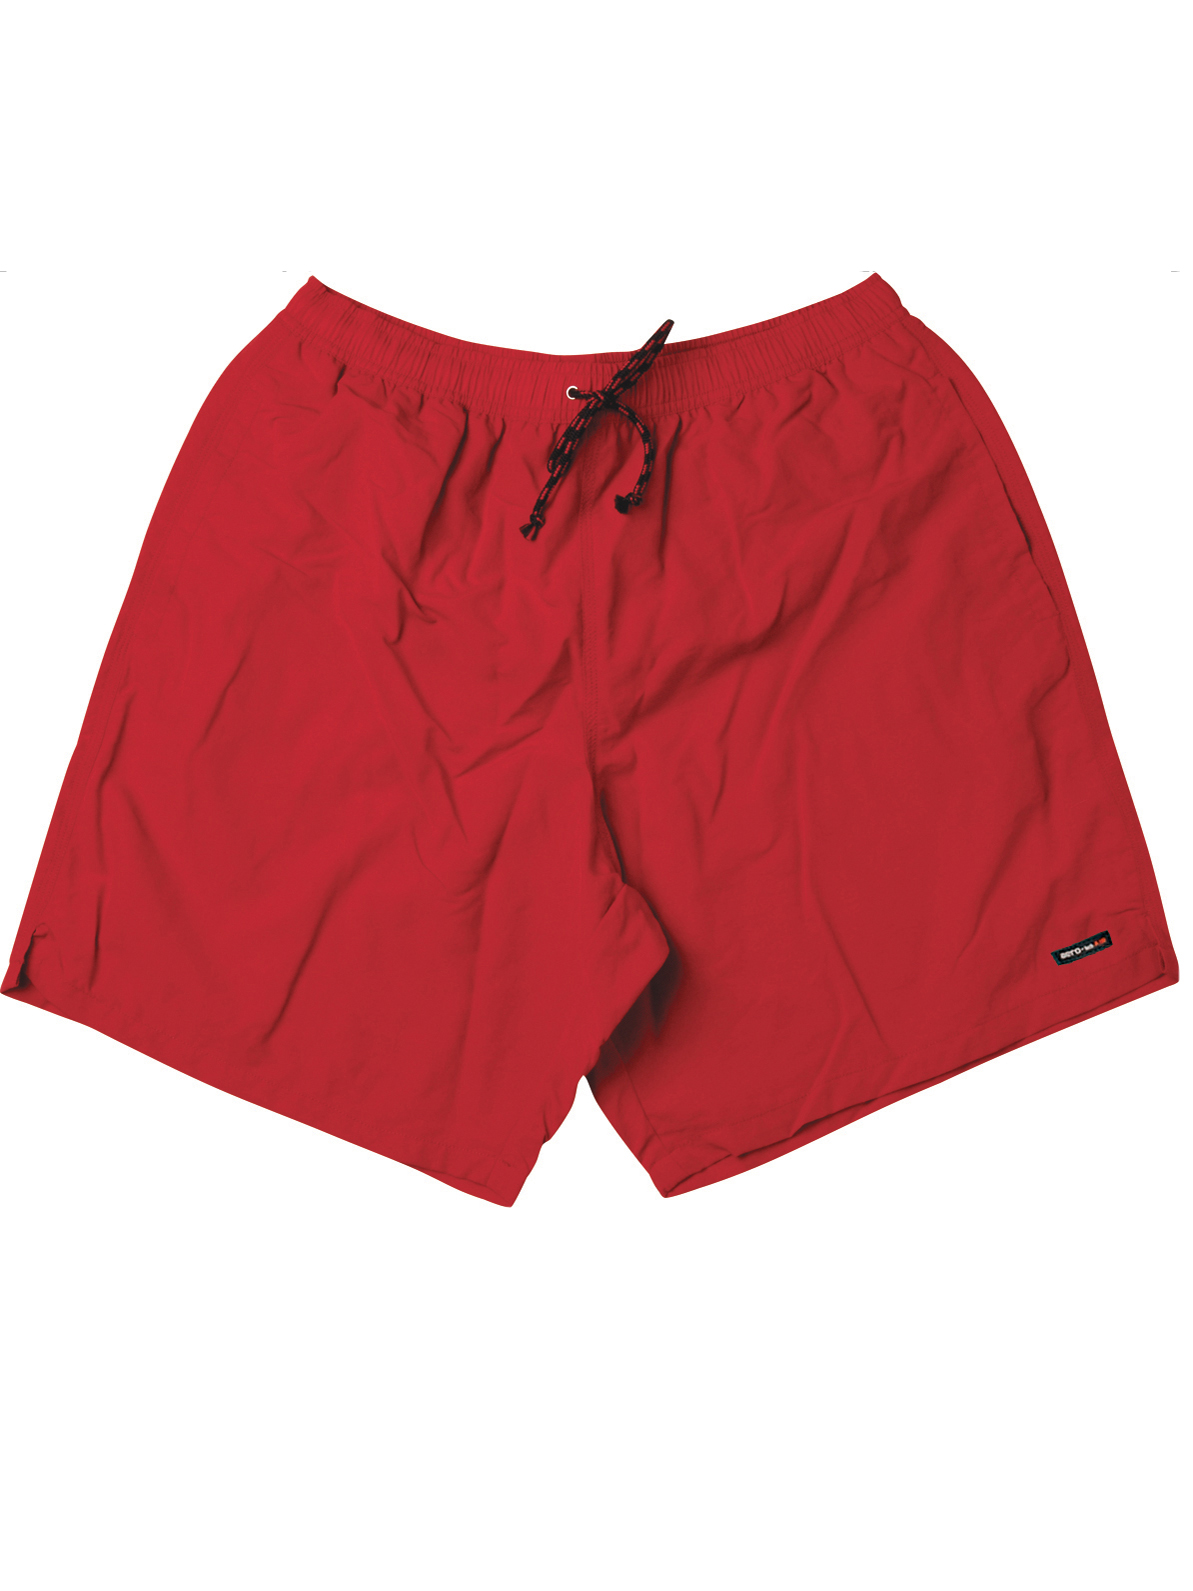 11d93dc0 North 56´4 Bade Shorts (Rød) – Storerobert